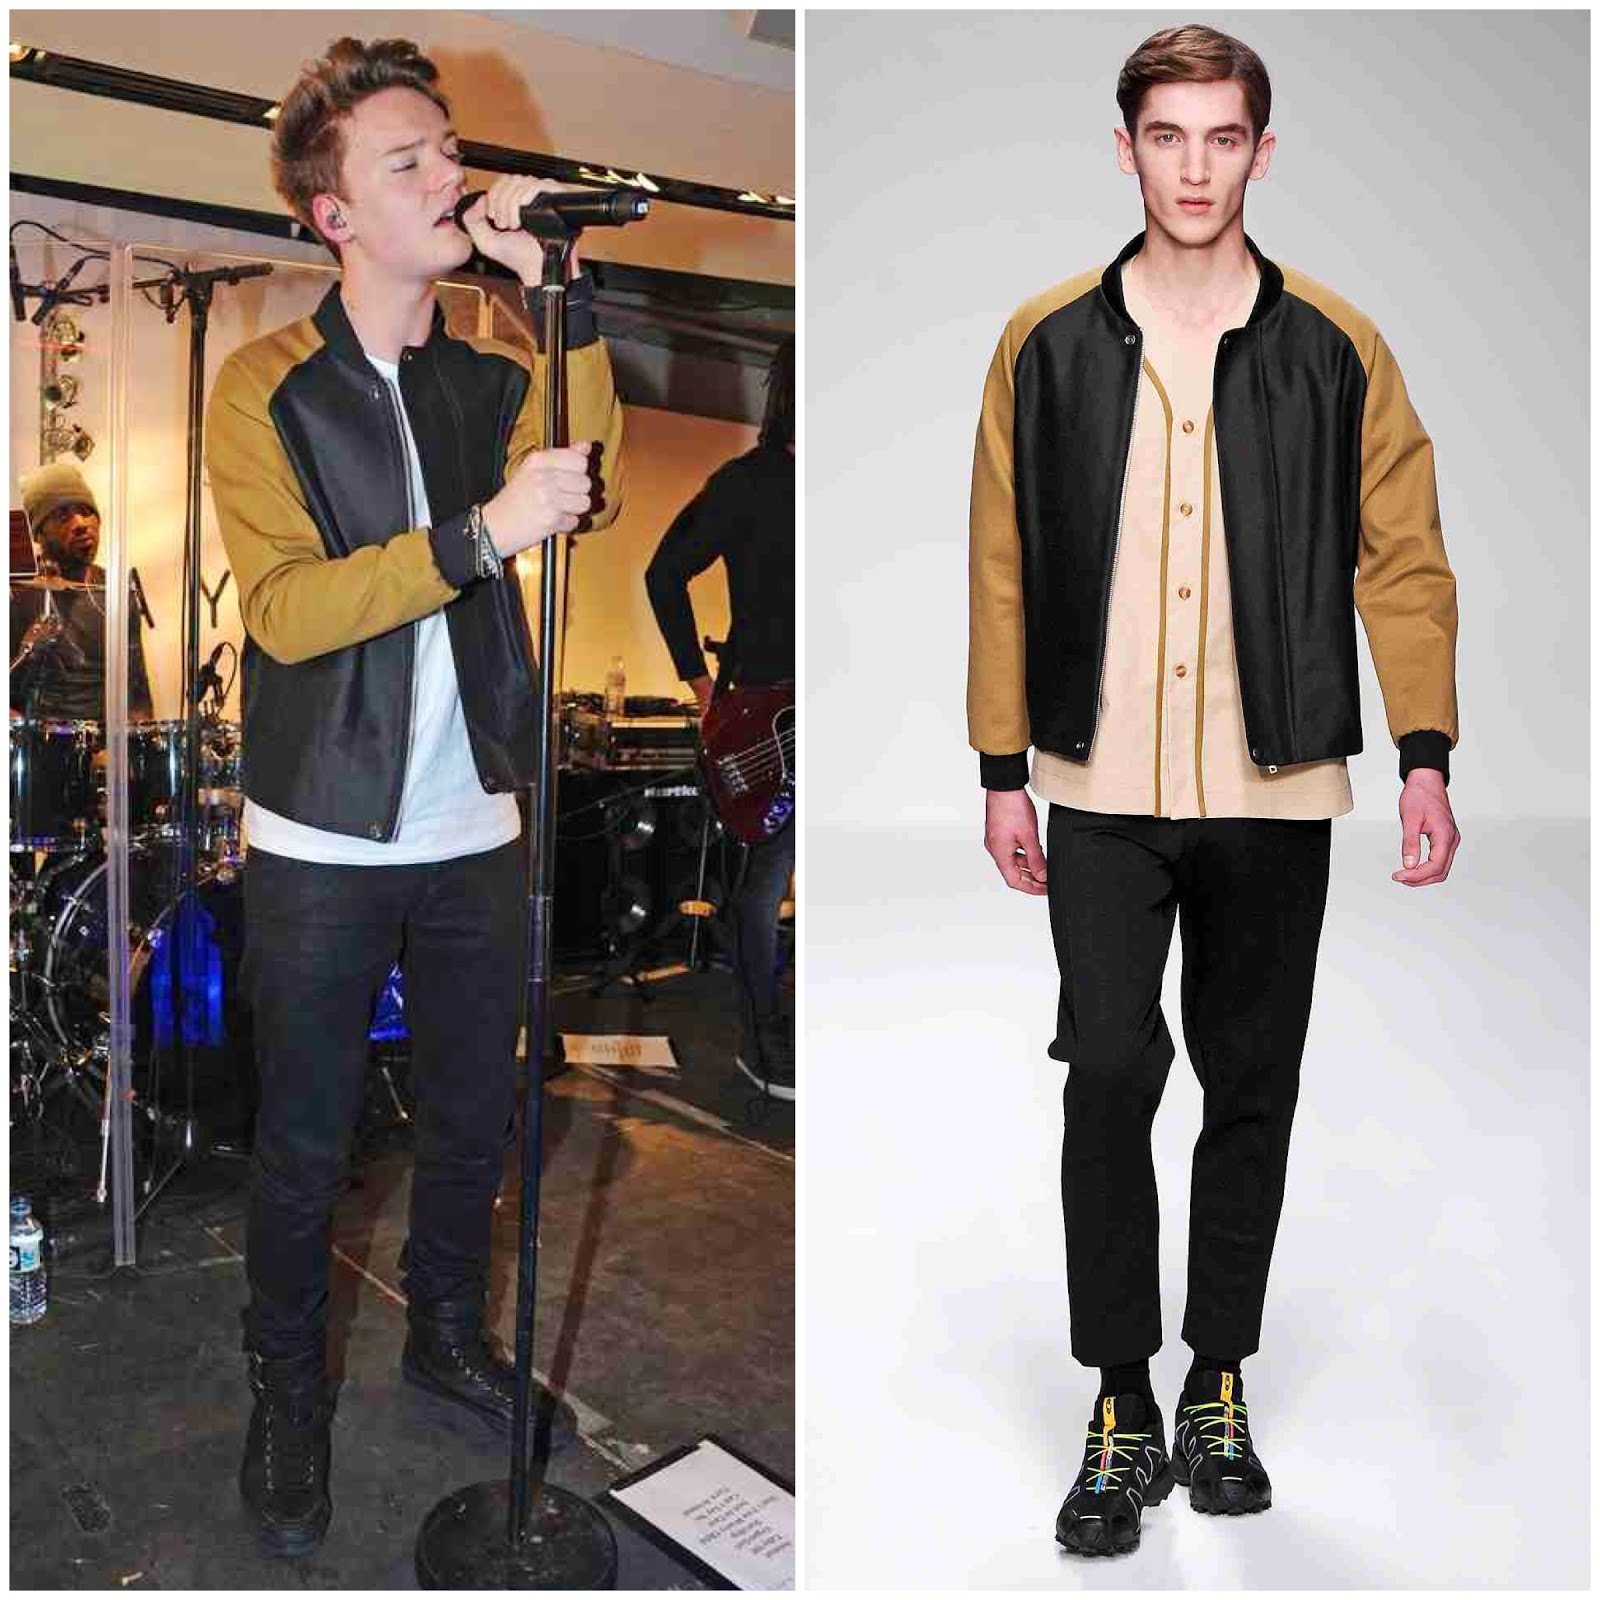 00O00 Menswear Blog Conor Maynard in Lou Dalton - Citadium store performance, Paris